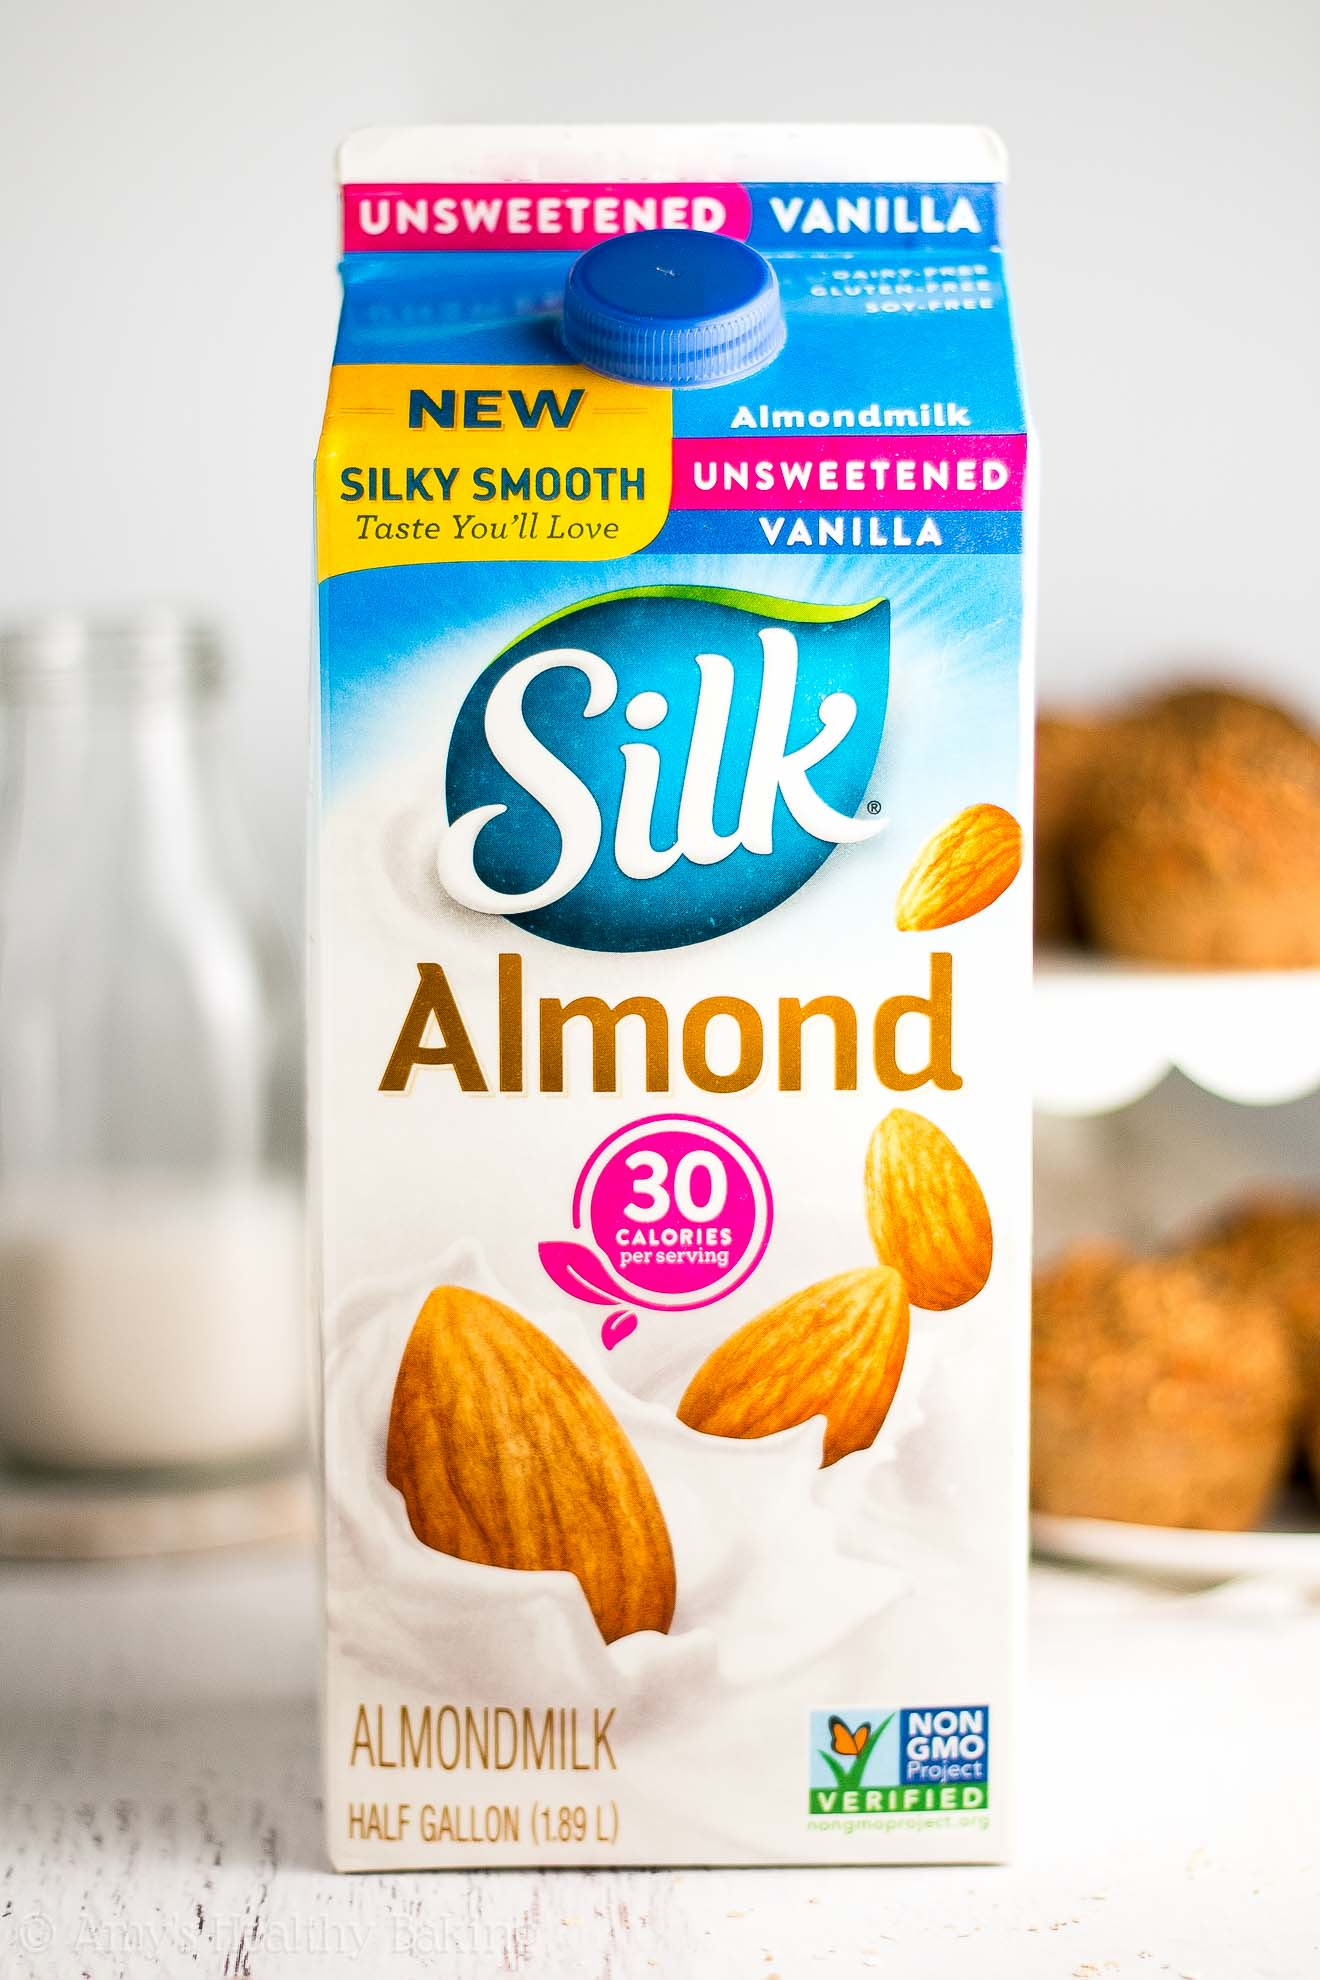 Half gallon carton of Silk unsweetened vanilla almond milk